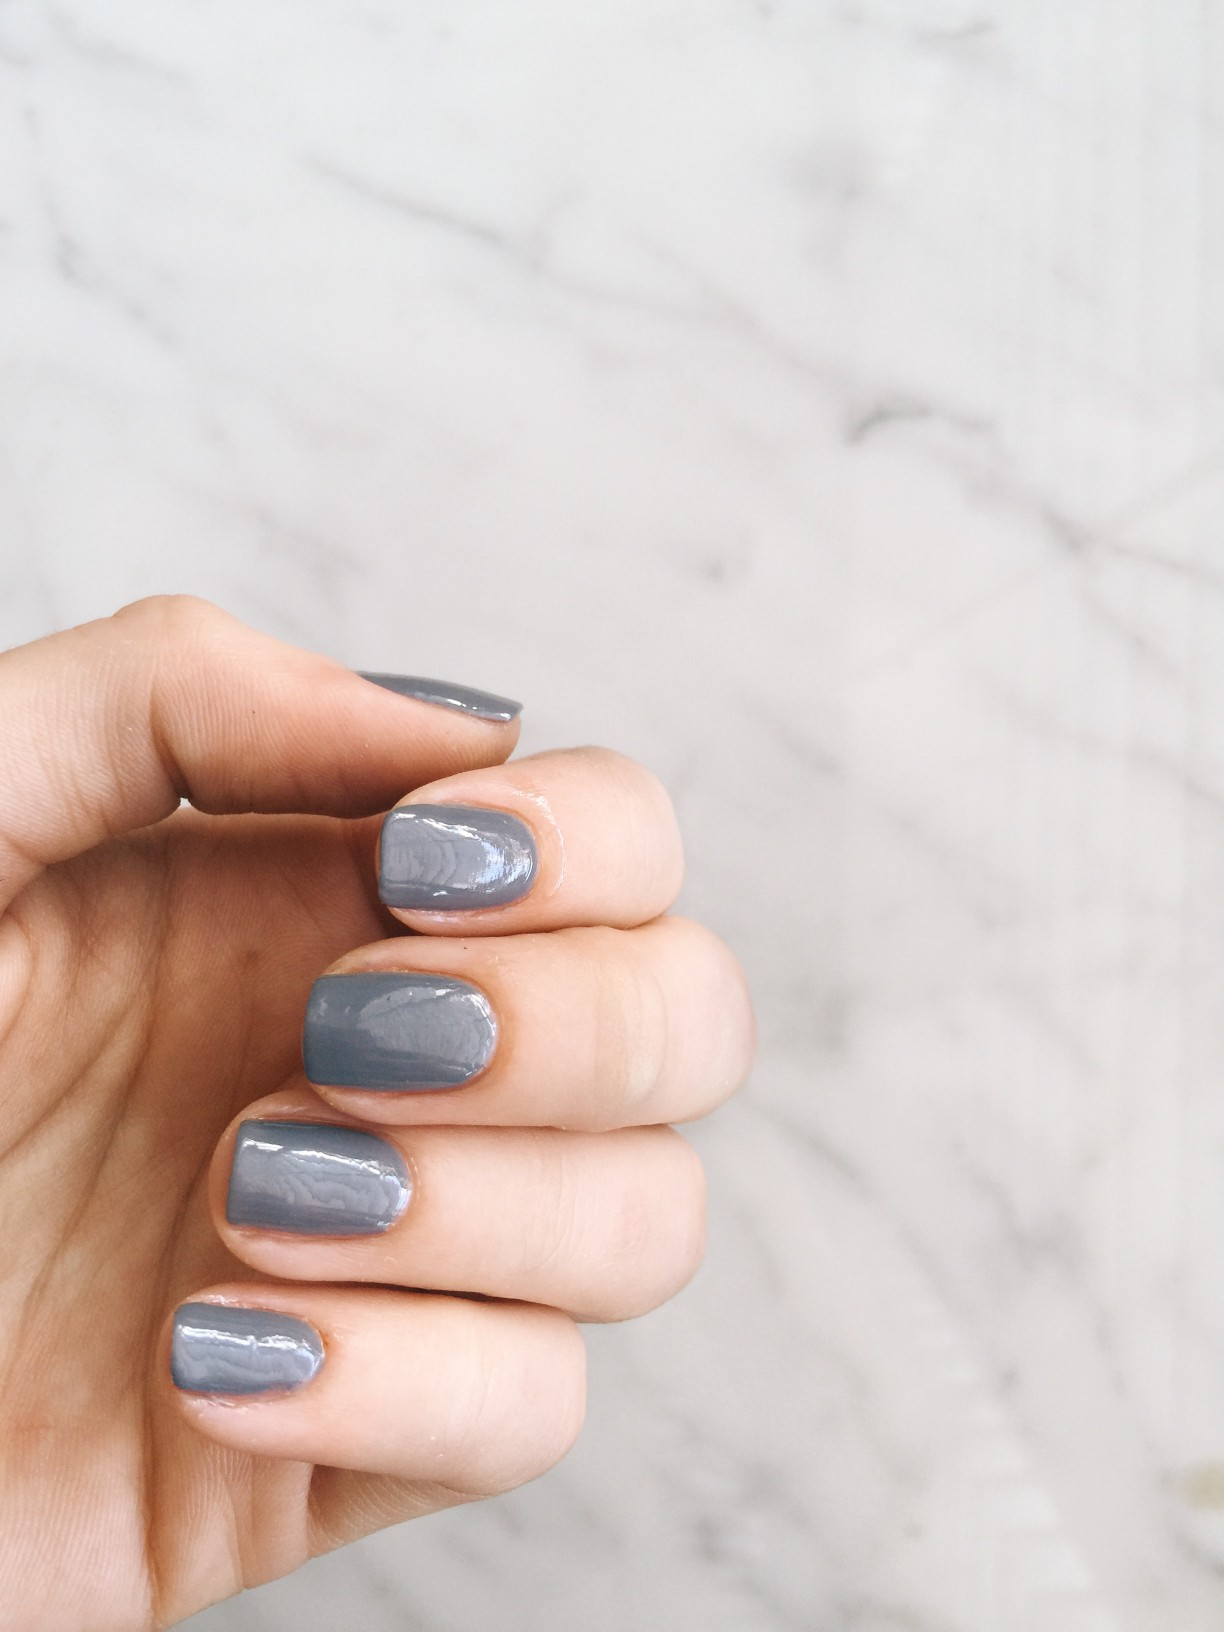 most stylish nail polish colors grey nail polish manicure | Most Stylish Nail Polish Colors featured by popular US style blogger, Style Elixir